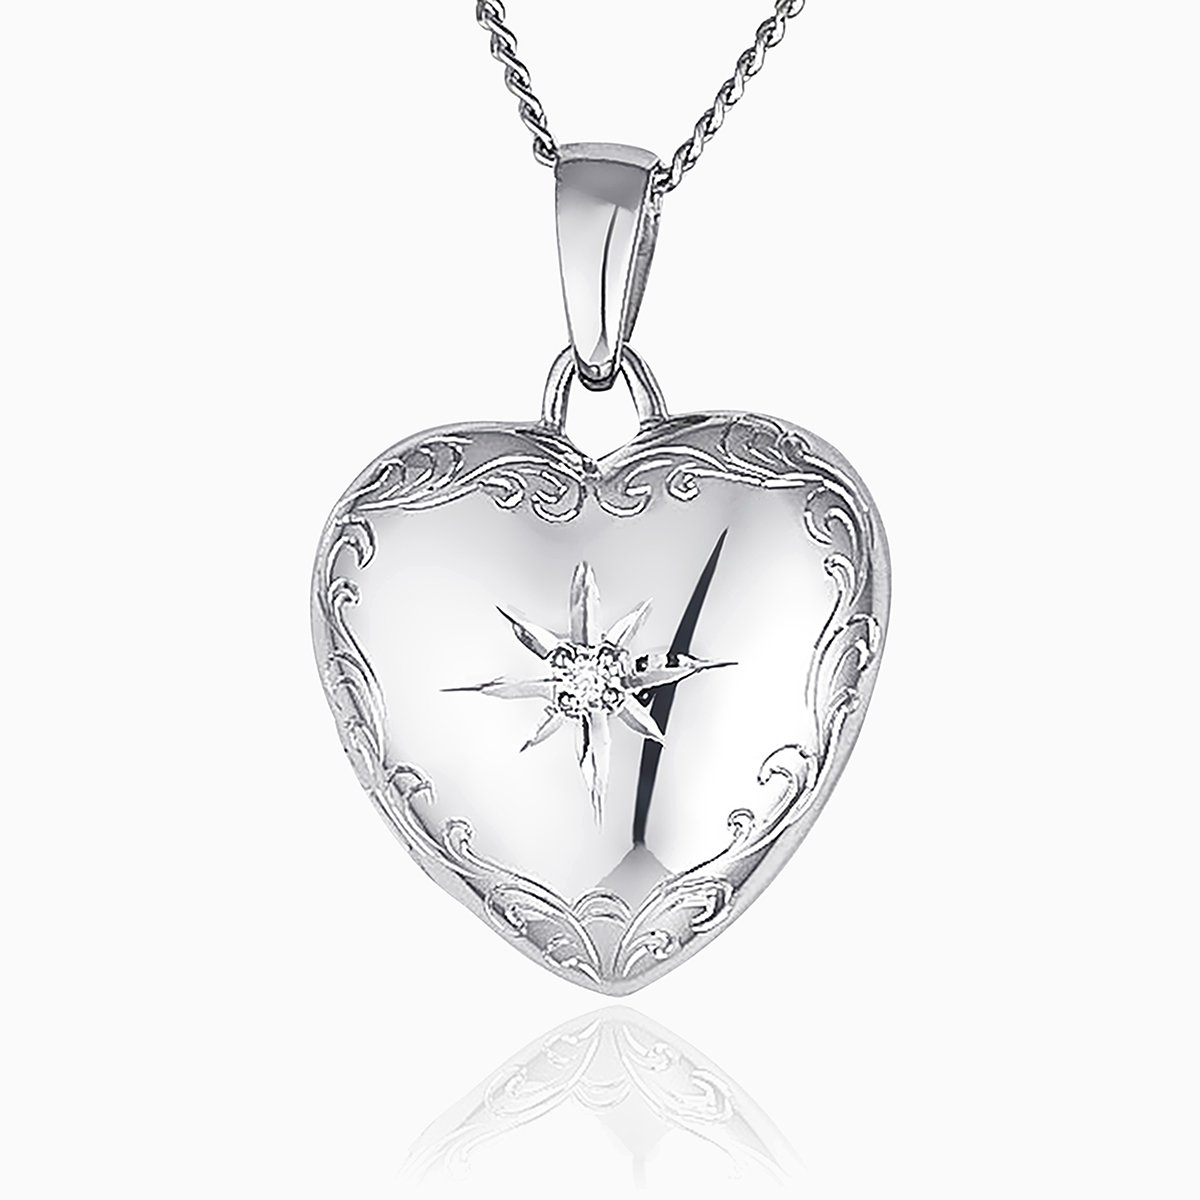 Product title: Romantic White Gold and Diamond Locket, product type: Locket